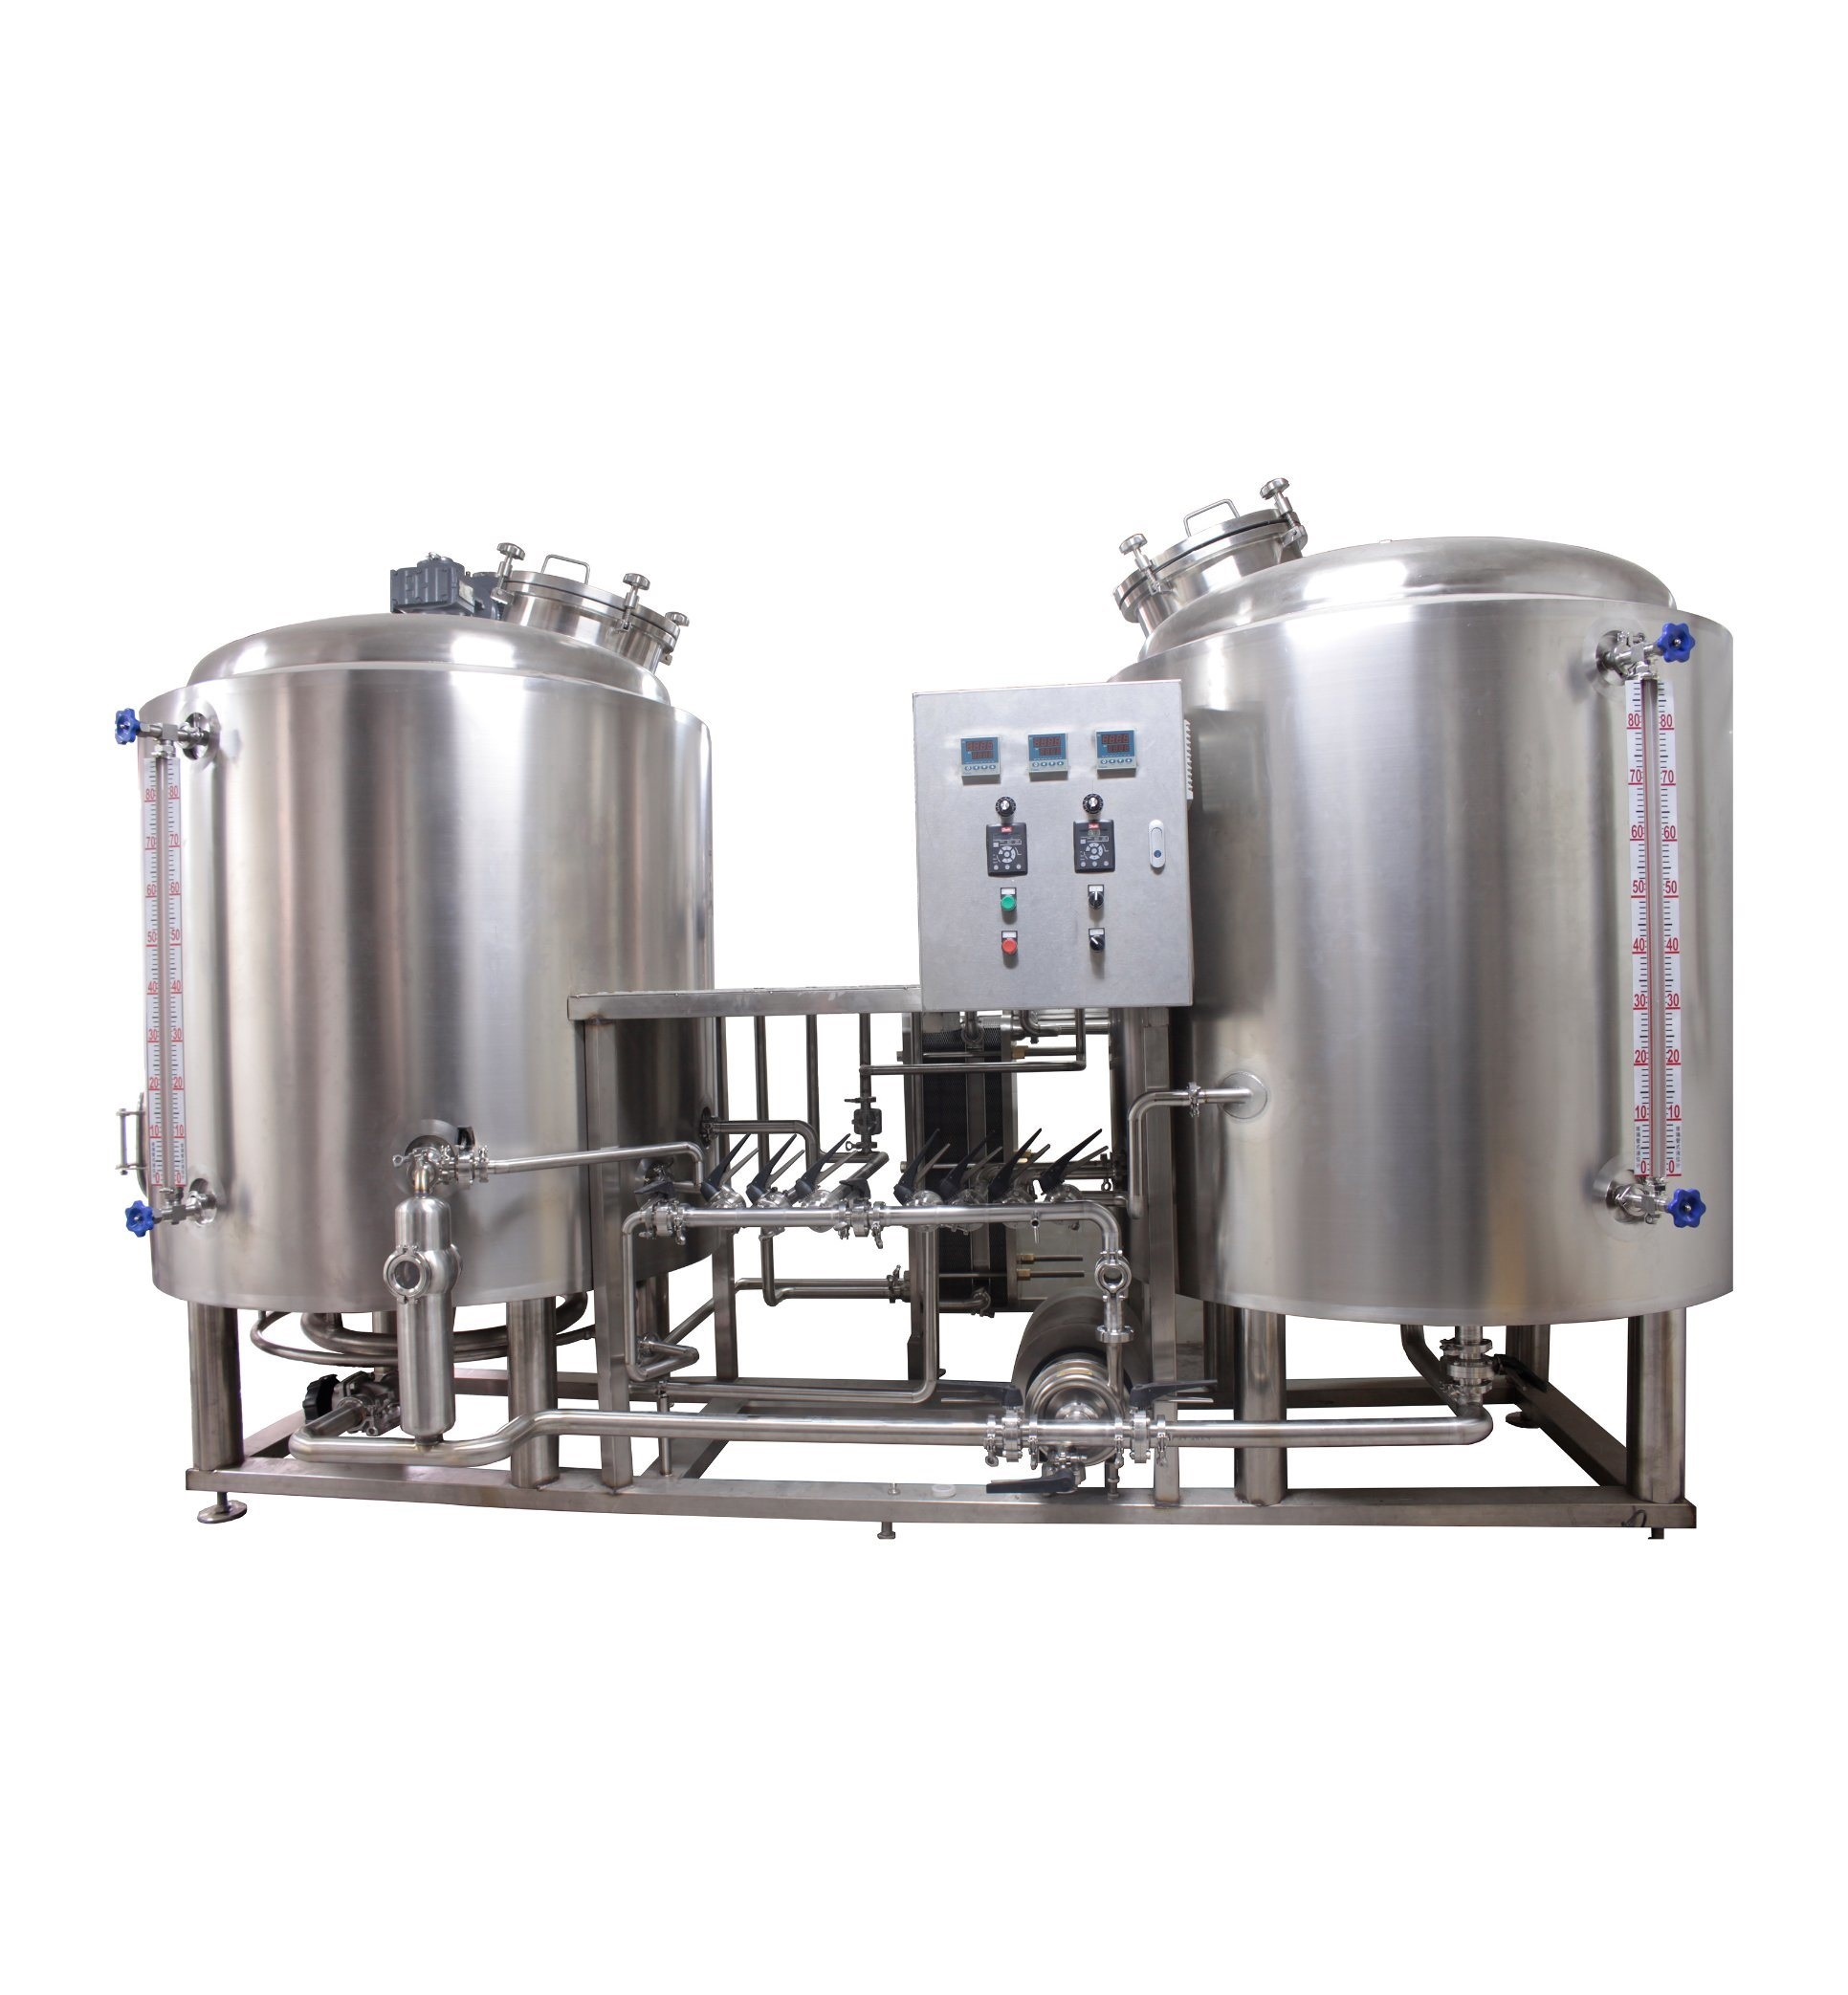 Craft Beer Brewing Equipment 200L - 1000L Commercial Industrial Brew House